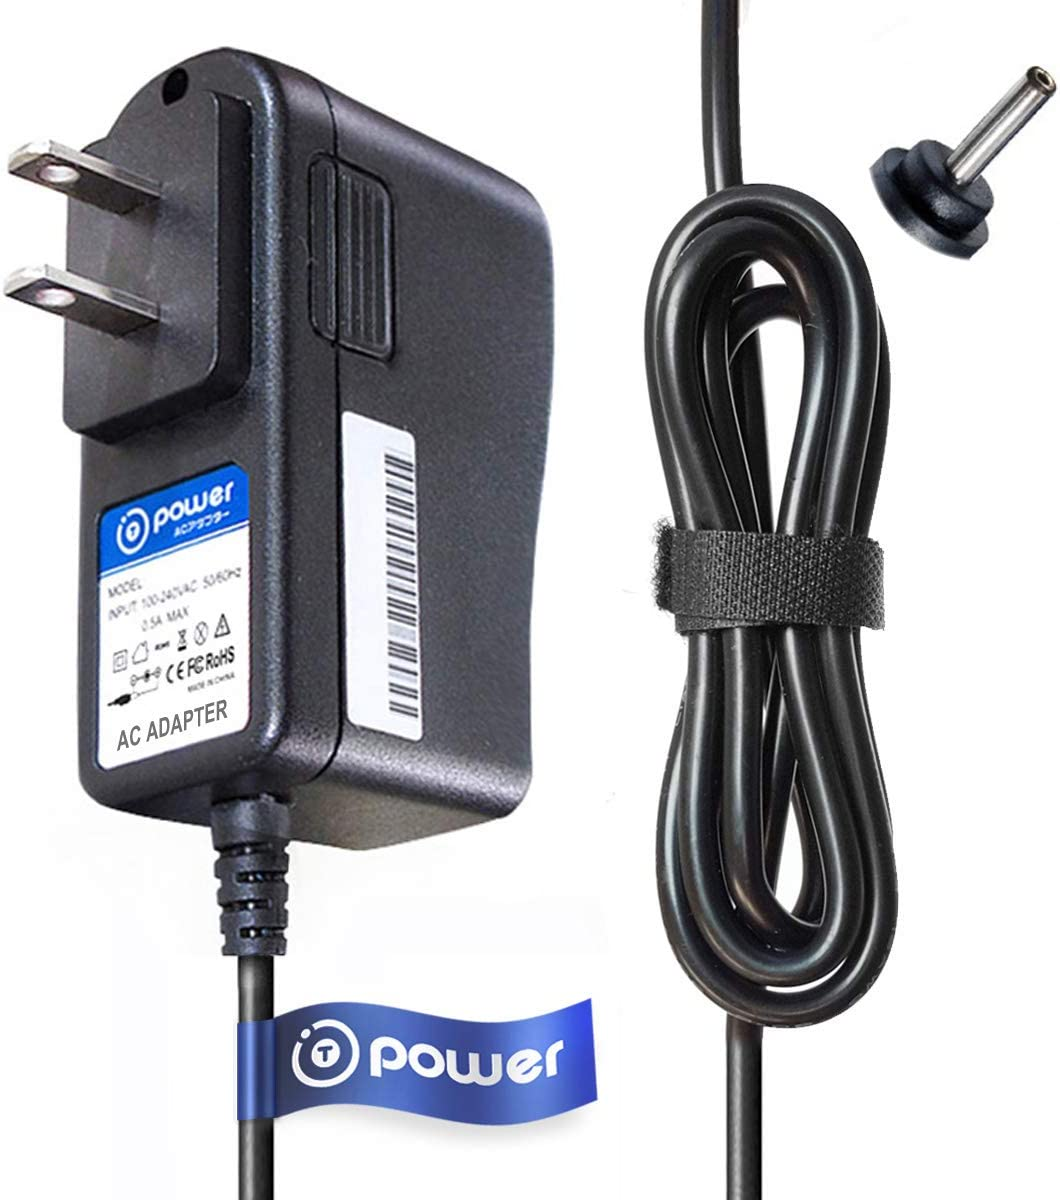 T POWER 9V Ac Dc Adapter Charger Compatible with Ryobi CH124 720391002 HP108L ZRHP108L SA721 Lithium-Ion Cordless Kit Drill Driver Class 2 Transformer Charger Power Supply